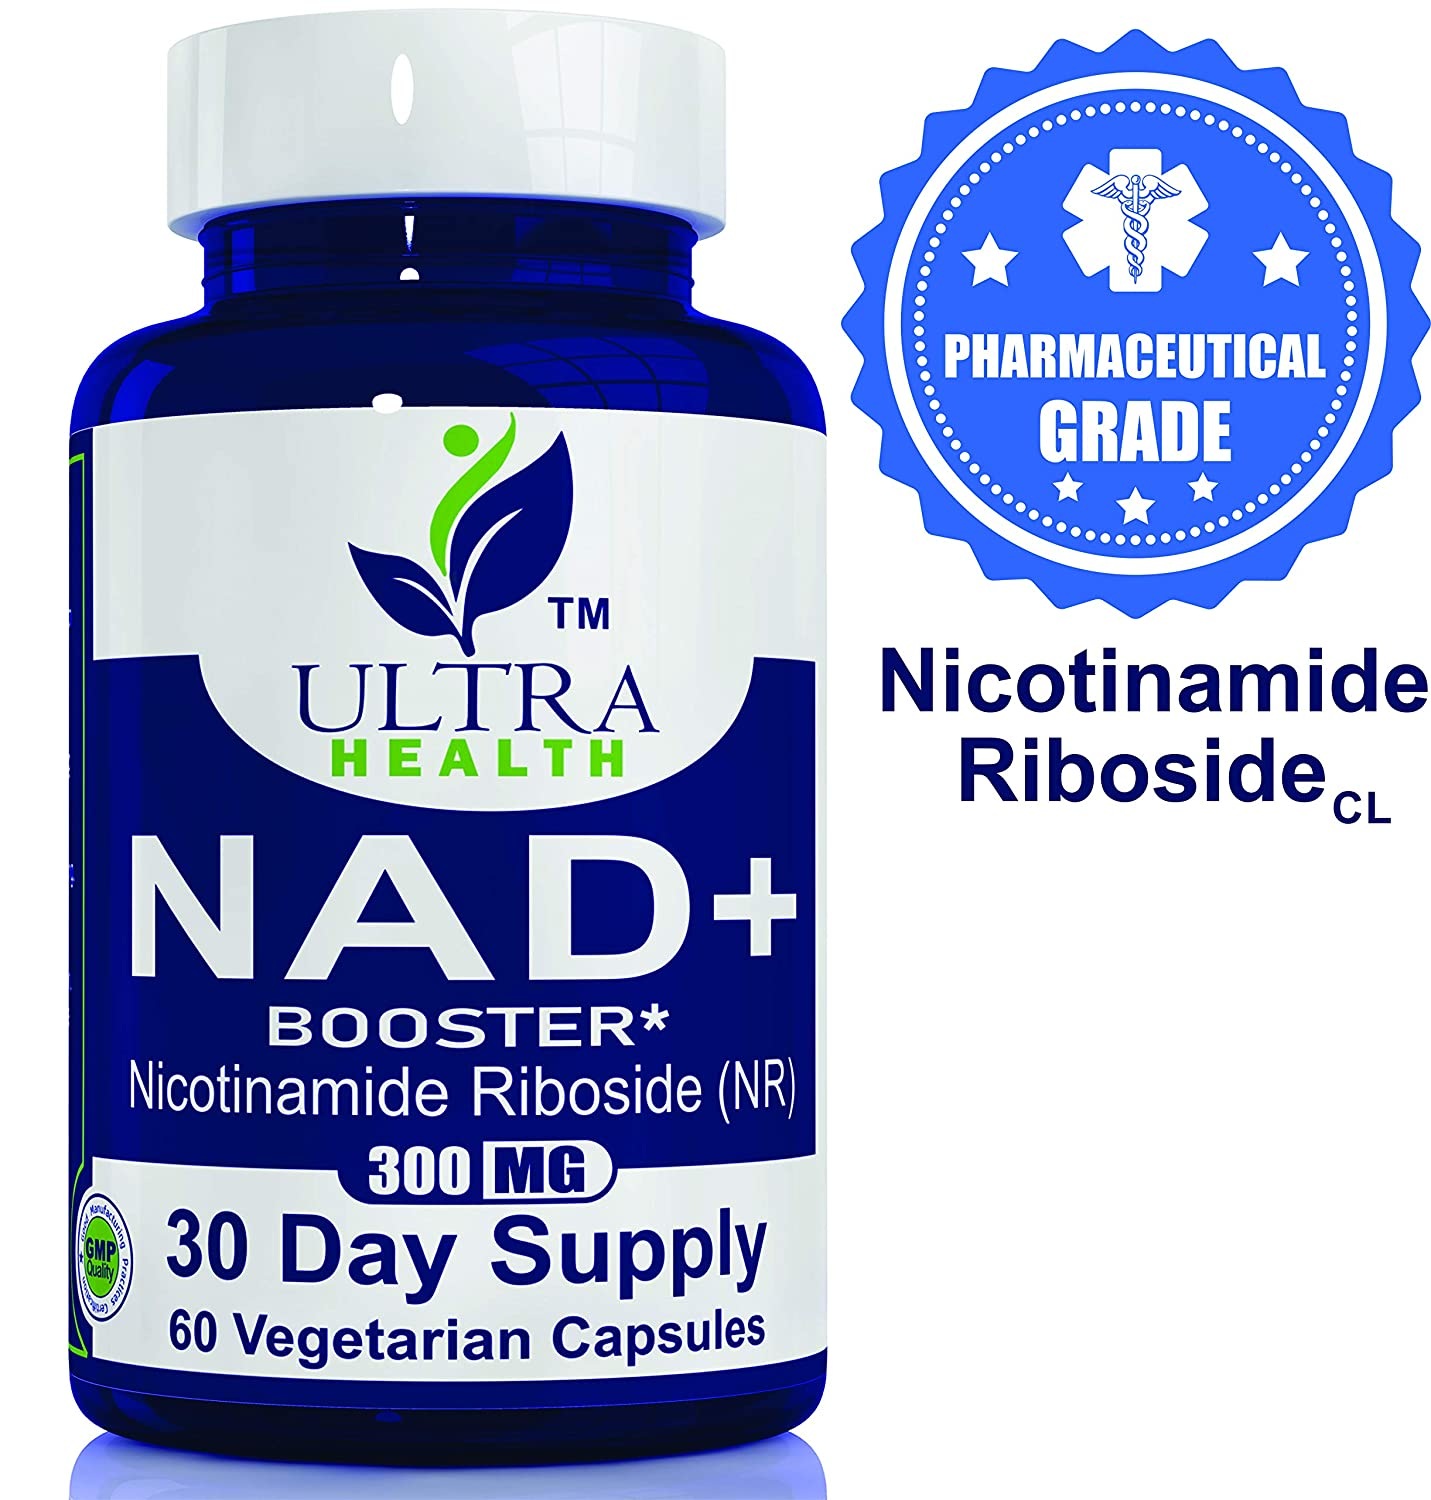 Nicotinamide Riboside - 300mg/Serving, NAD+ Booster, Ultra-High Purity Pharmaceutical Grade, nicotinamide riboside Chloride, Best NAD Supplement, Same Ingredient as Tru Niagen and Elysium Basis NR